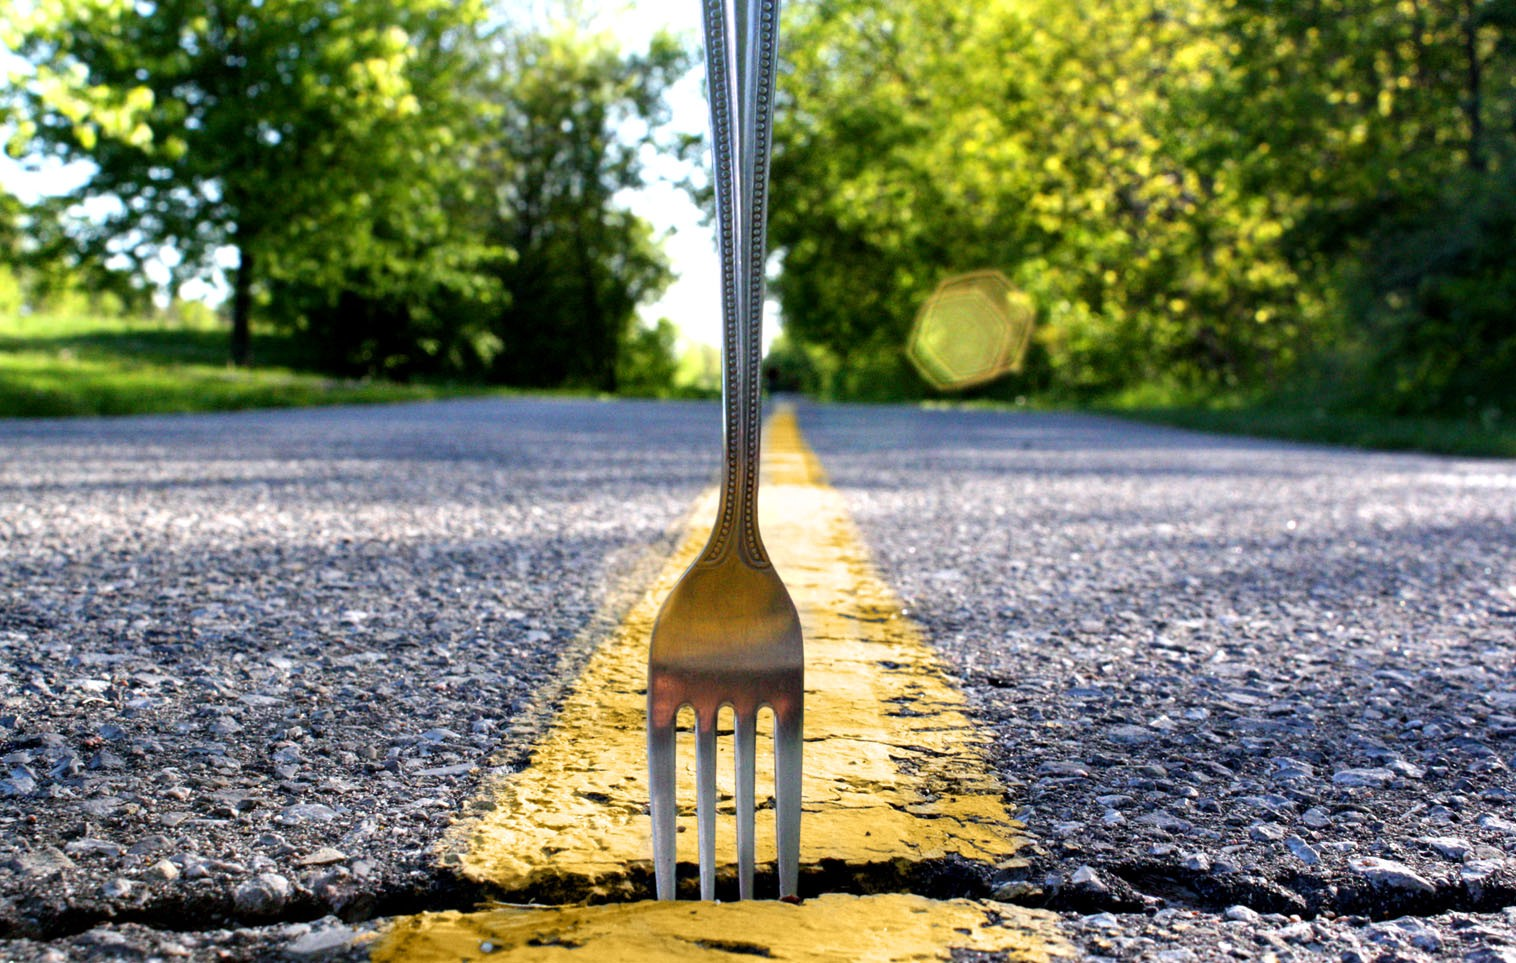 Fork in the road. Geddit geddit?